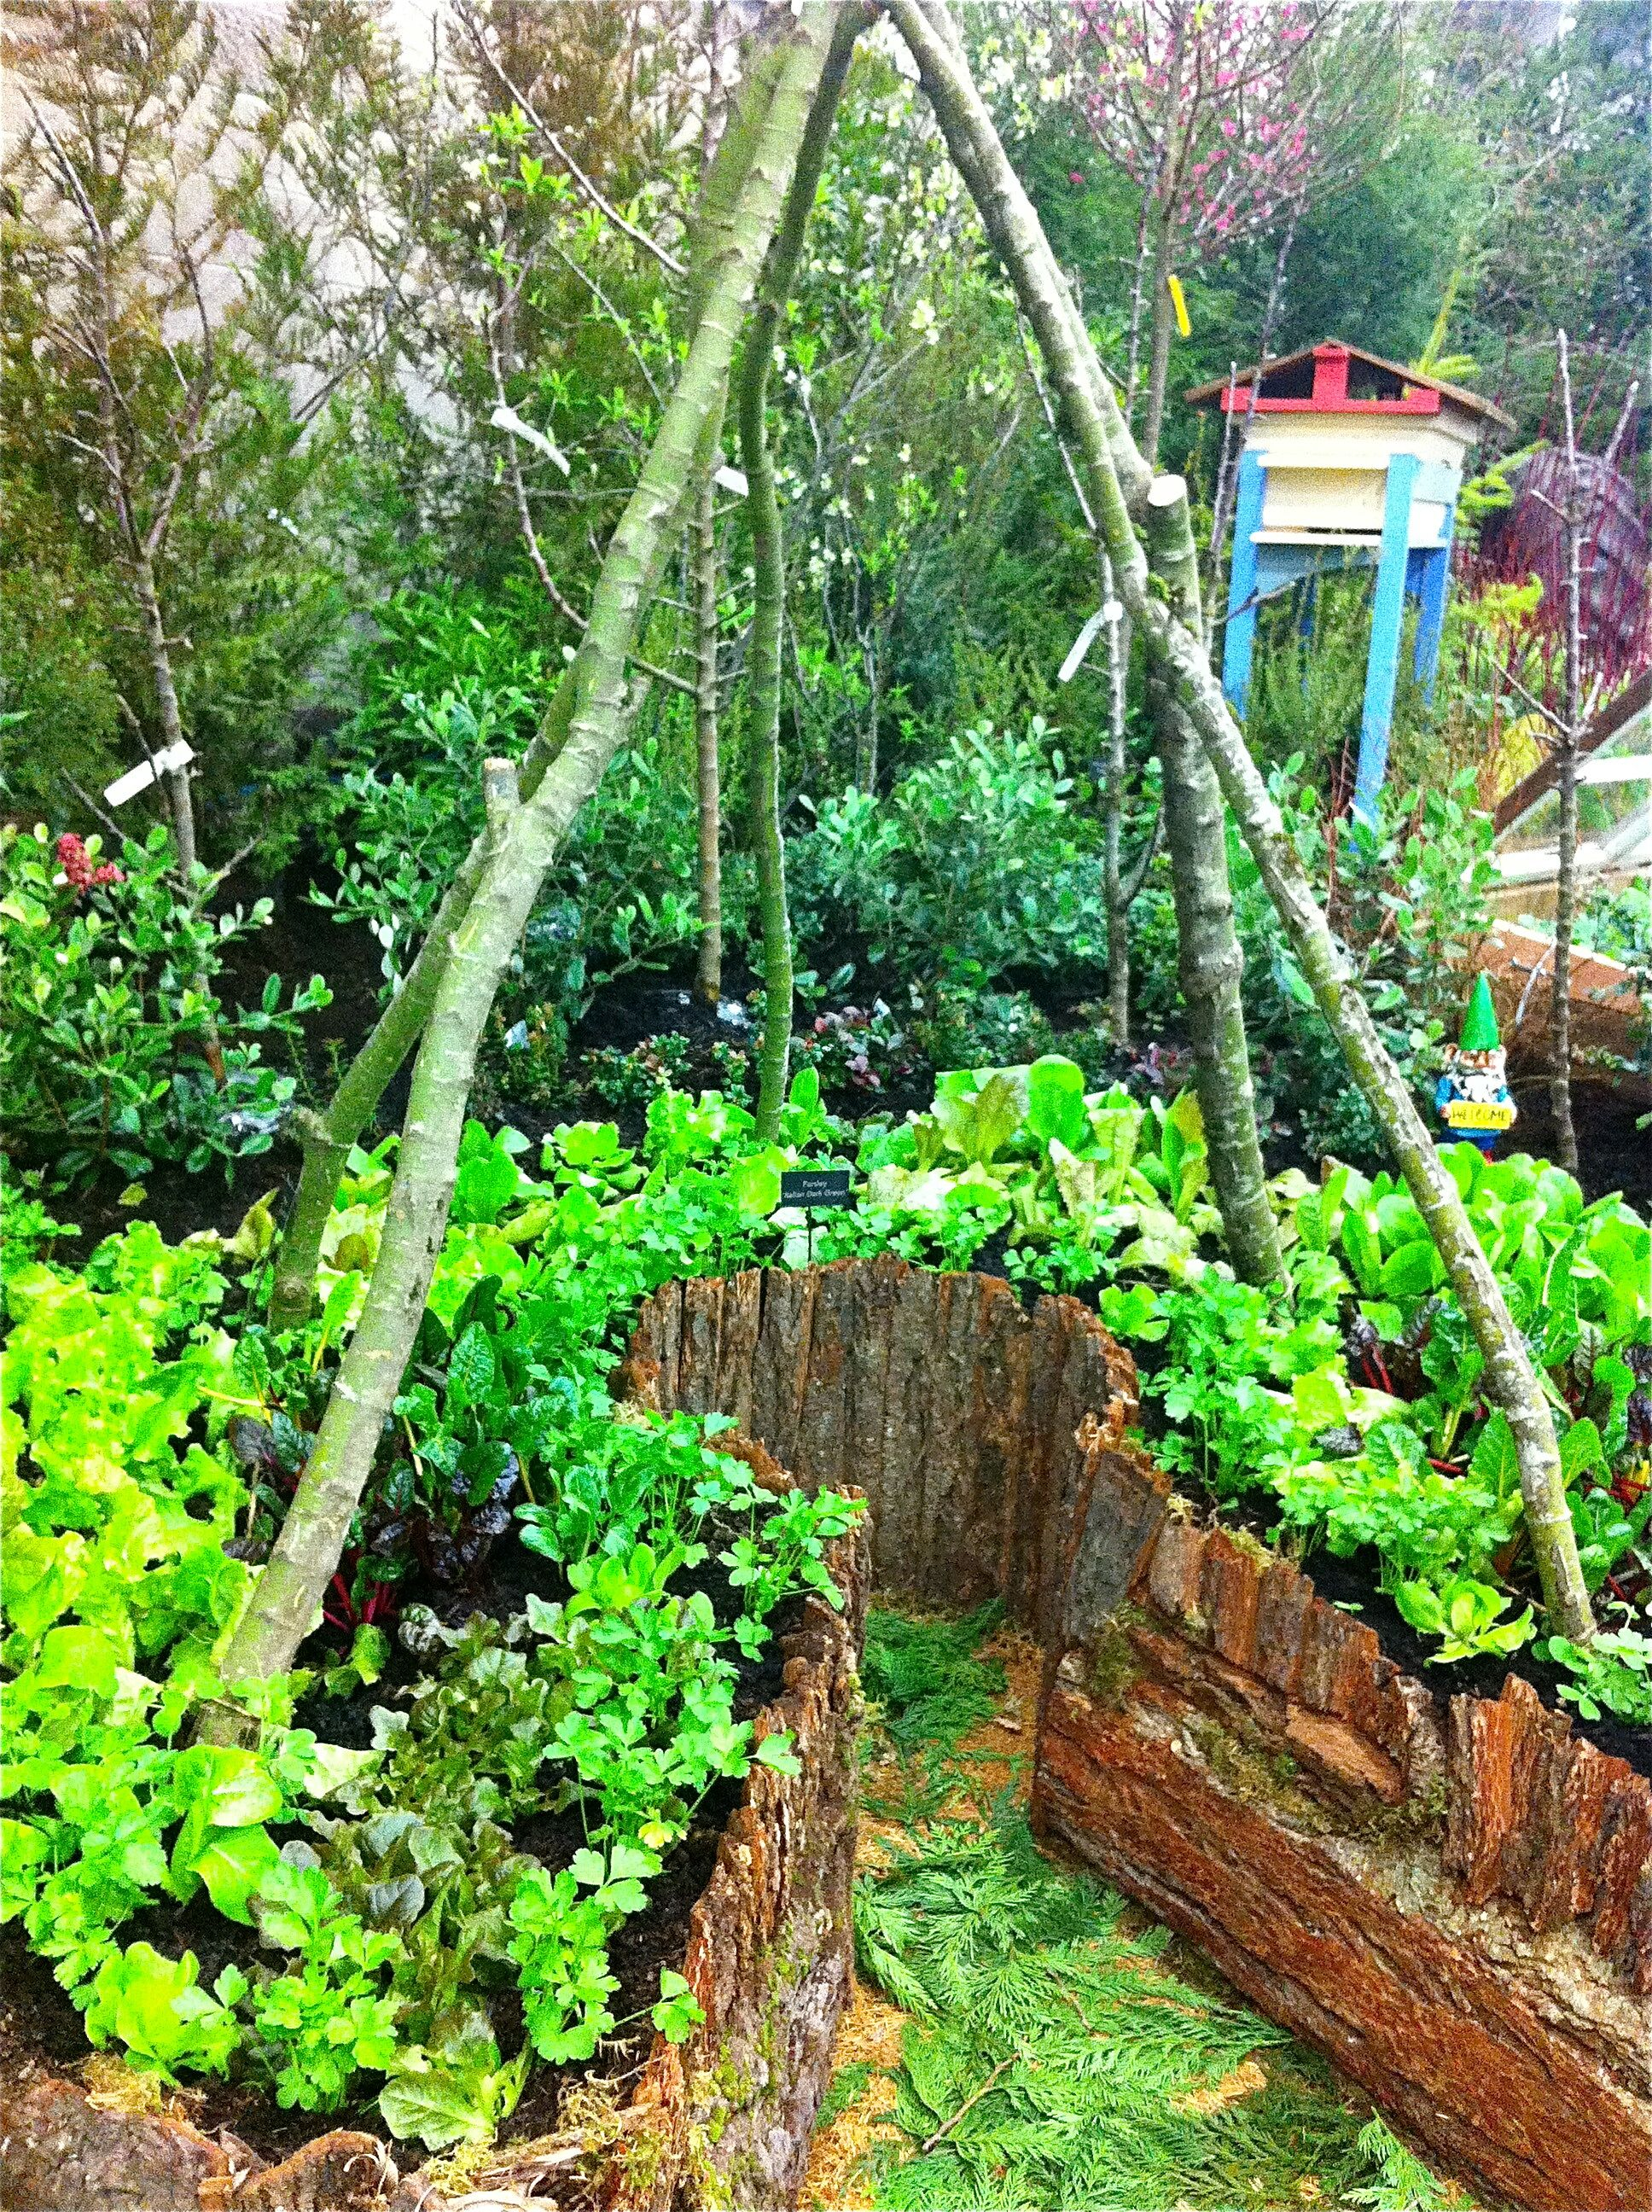 permaculture garden design | Gardening | Pinterest on Backyard Permaculture Design id=27882